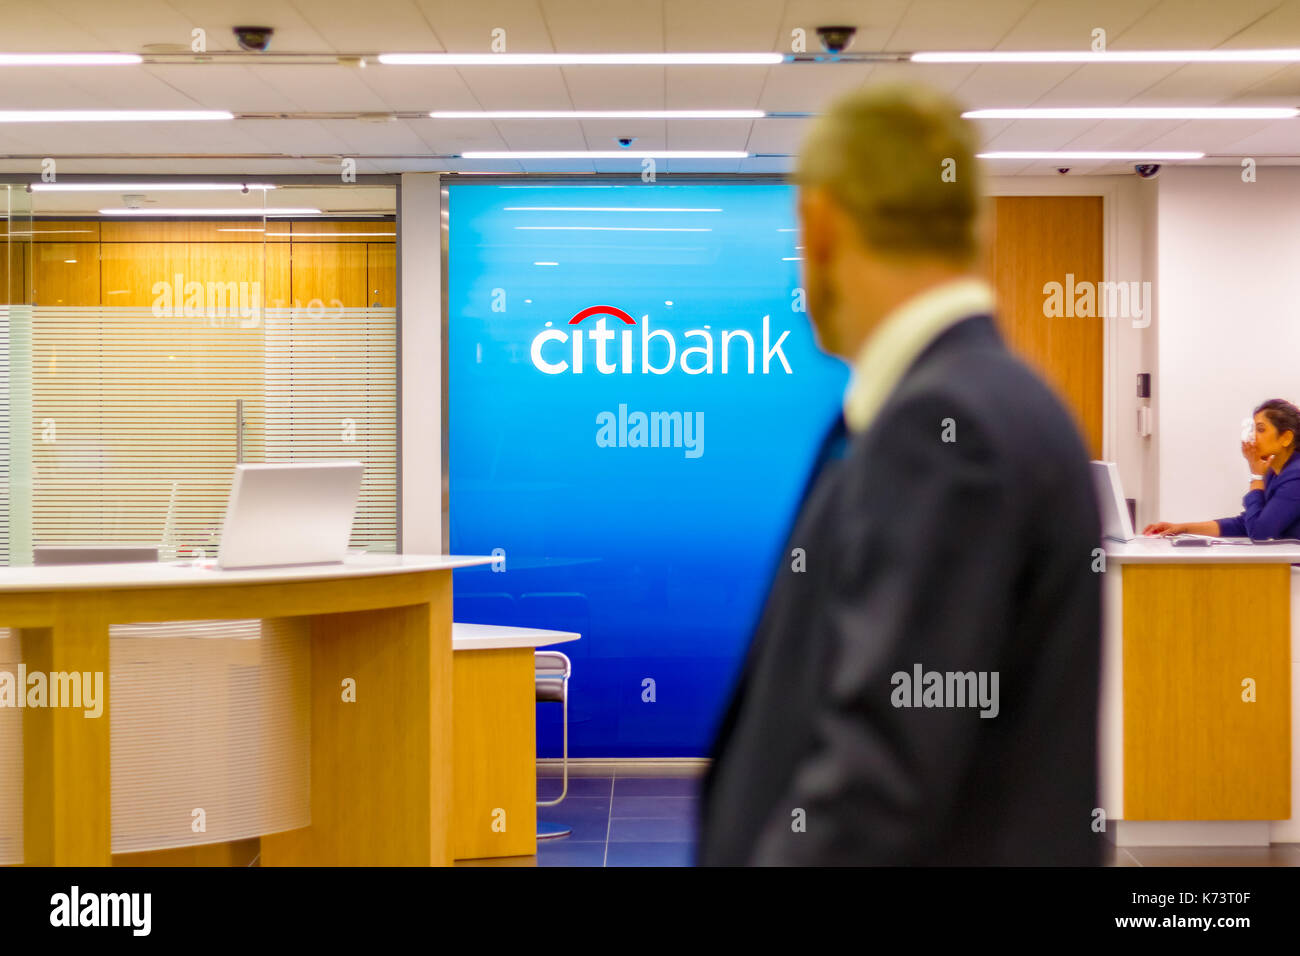 London, UK - September 15, 2017 - Citibank sign displayed at a branch in Canary Wharf with people passing by in the foreground - Stock Image